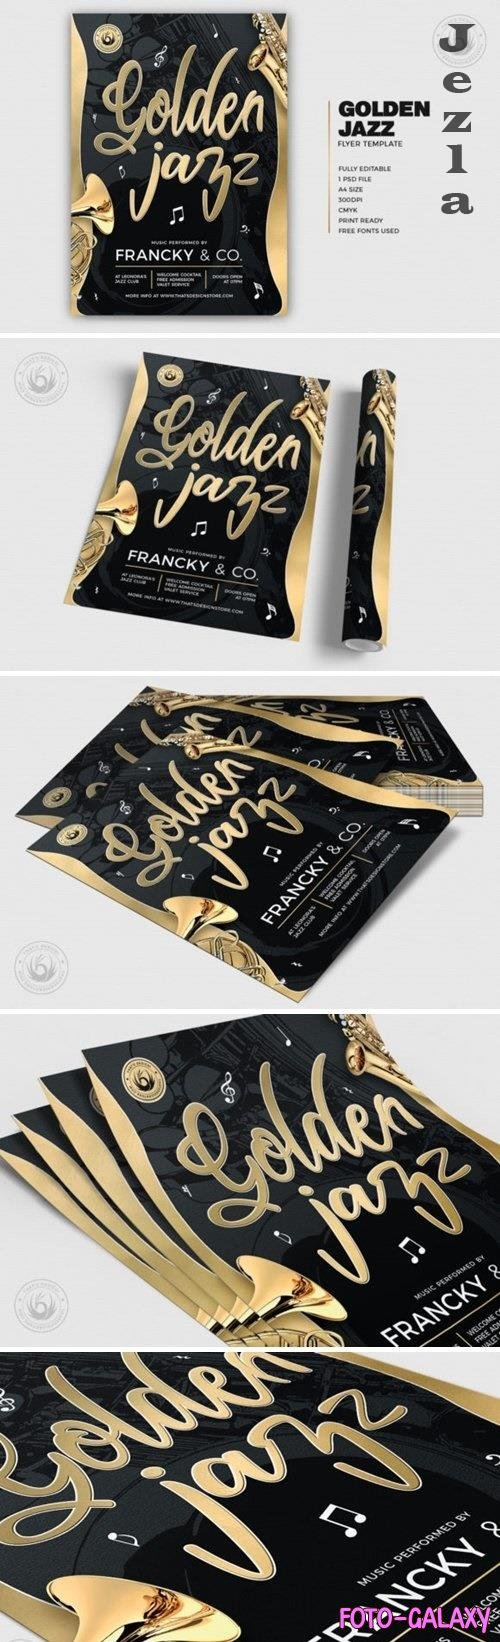 Golden Jazz Flyer Template V2 - 4931381